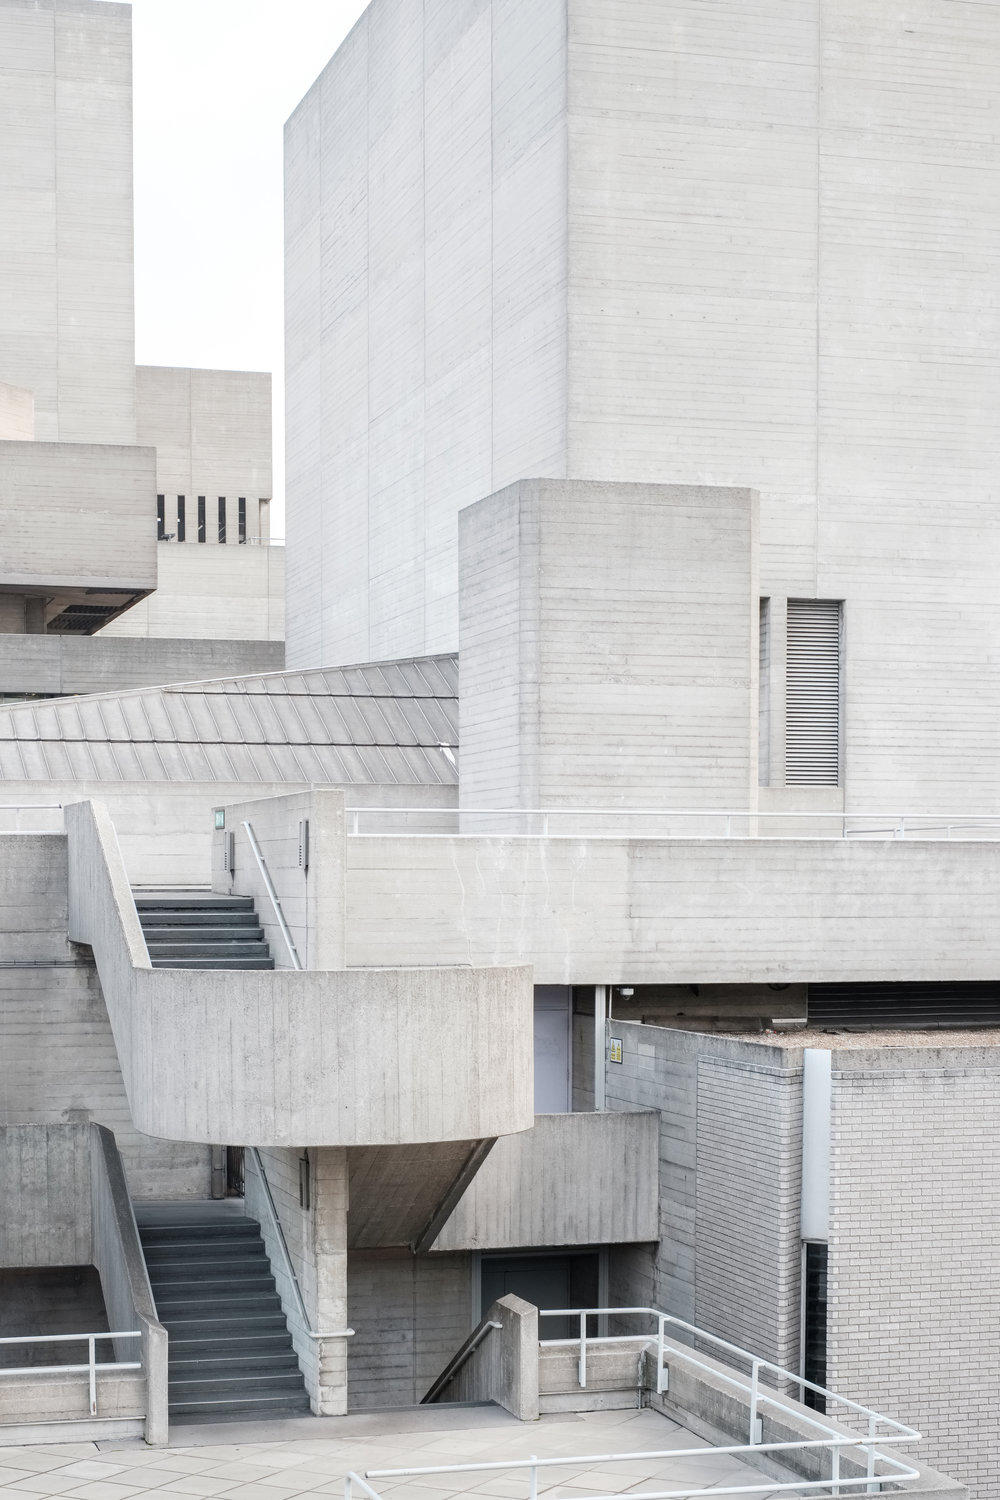 Fred+Howarth+Photography_National+Theater_03.jpg